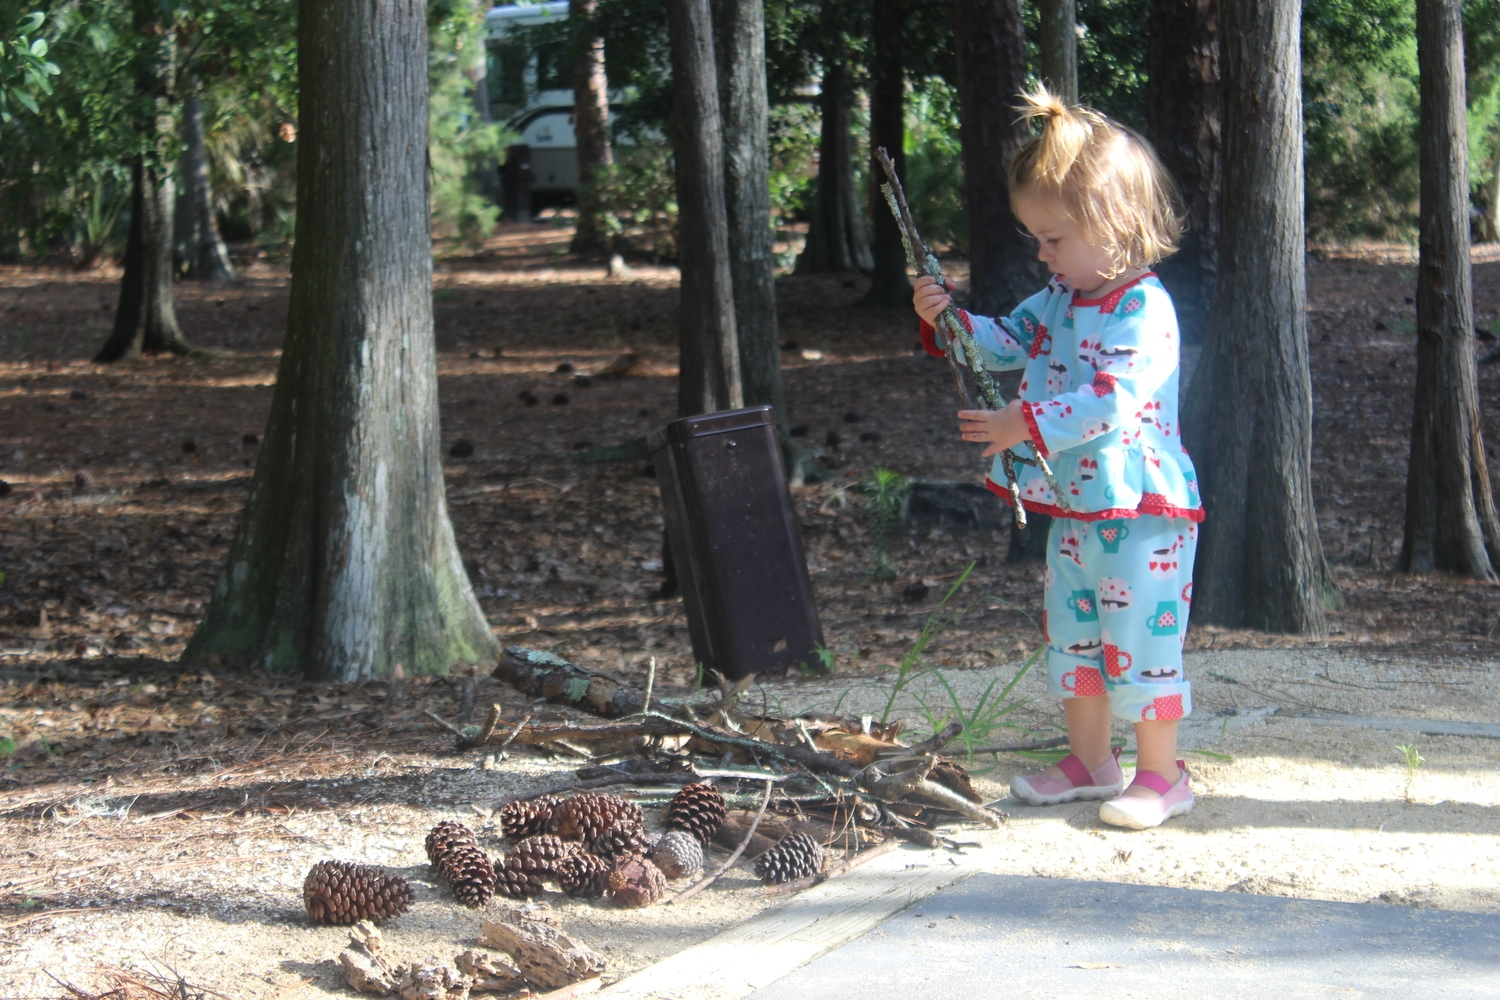 The kids loved gathering pine cones and finding frogs!